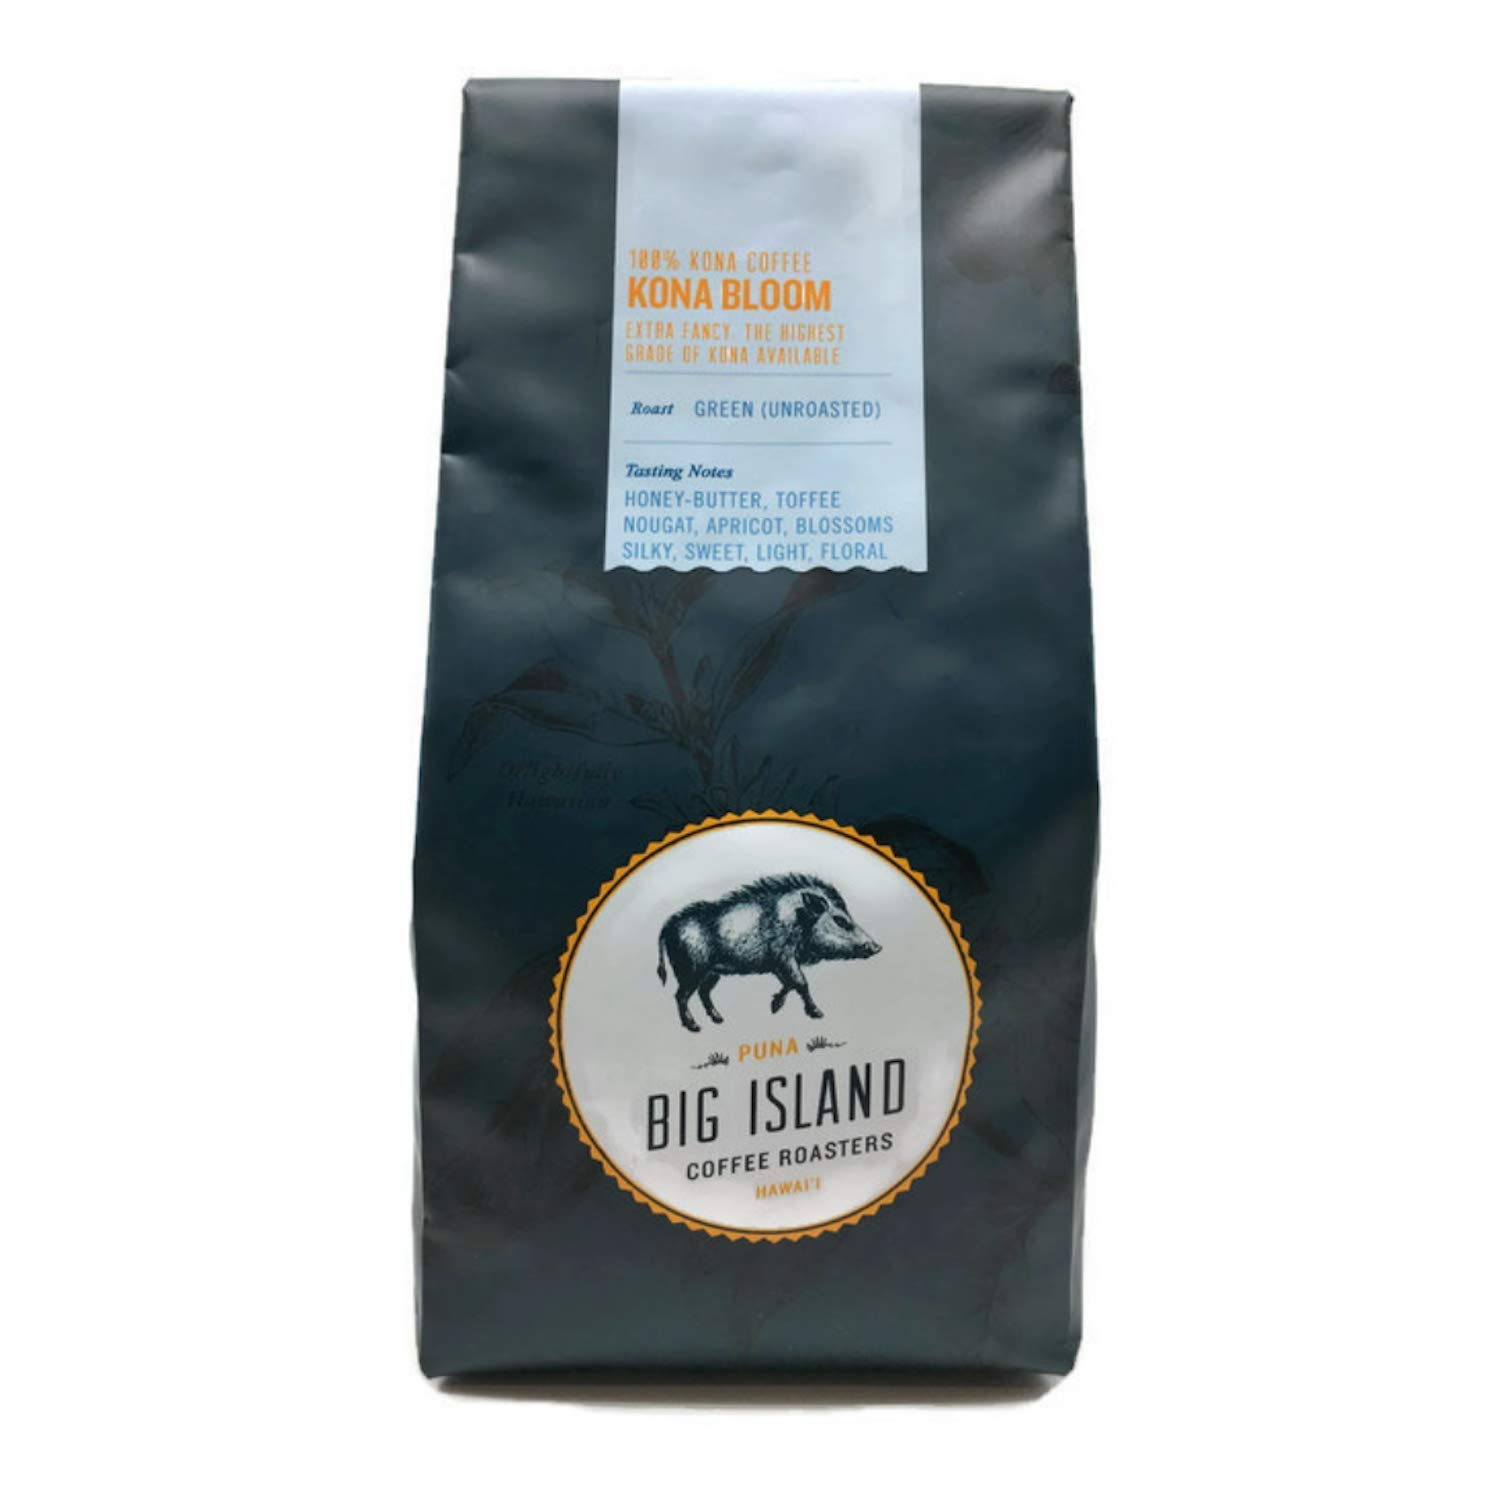 100% Kona green coffee beans - 'Extra Fancy' unroasted Hawaiian Kona green bean (16 oz), from Big Island Coffee Roasters by Kona Green Coffee - Big Island Coffee Roasters